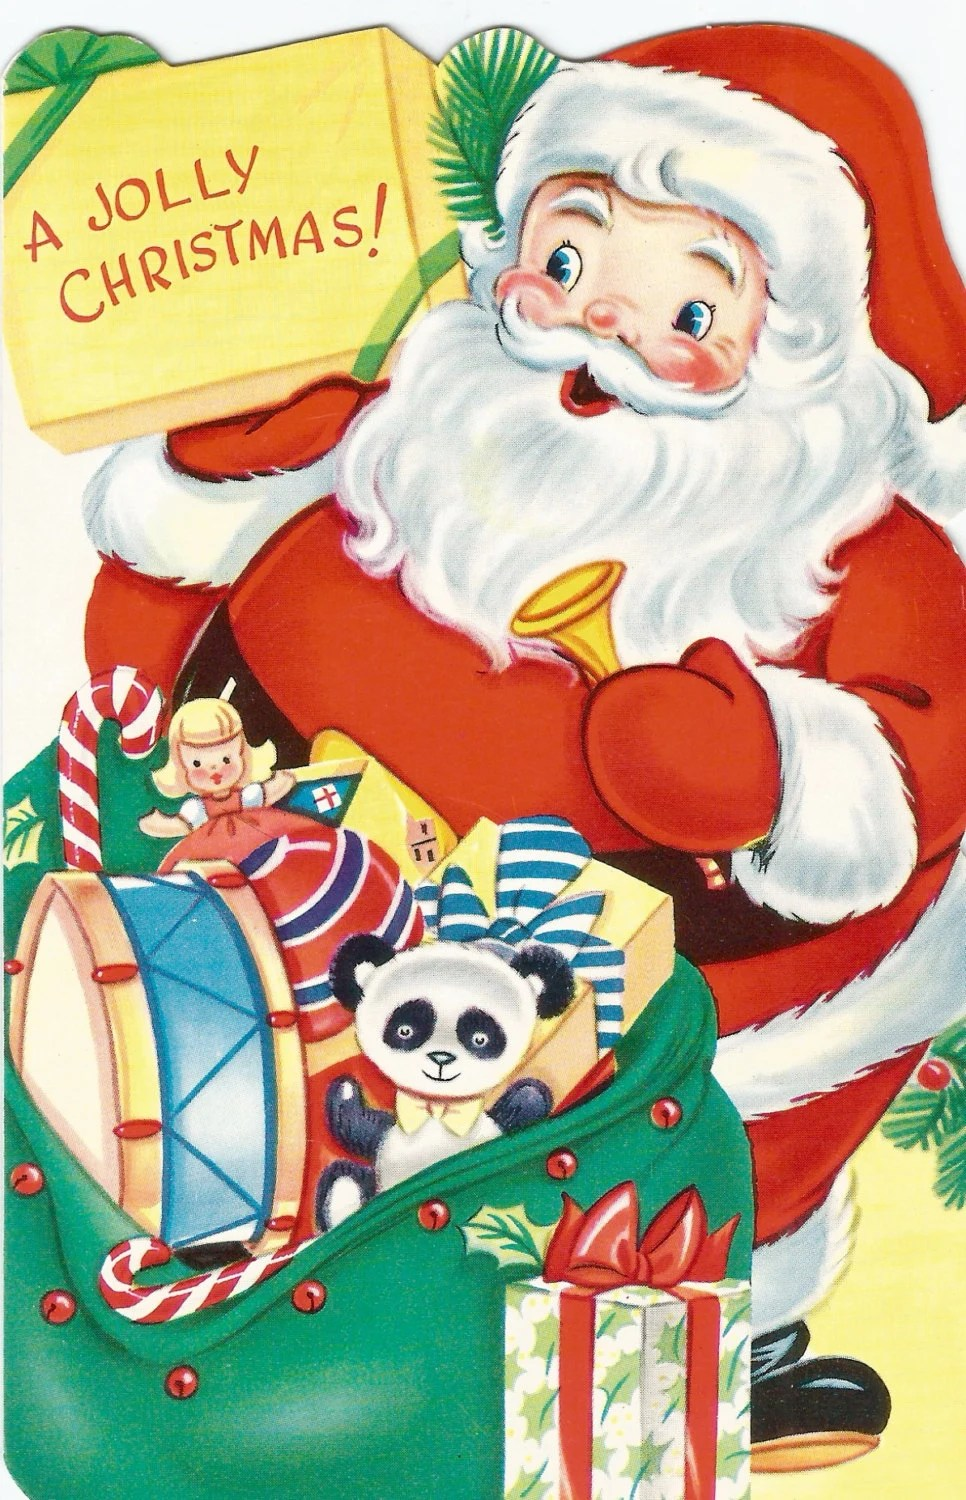 Vintage Santa Claus And Toys Christmas Card Digital Download